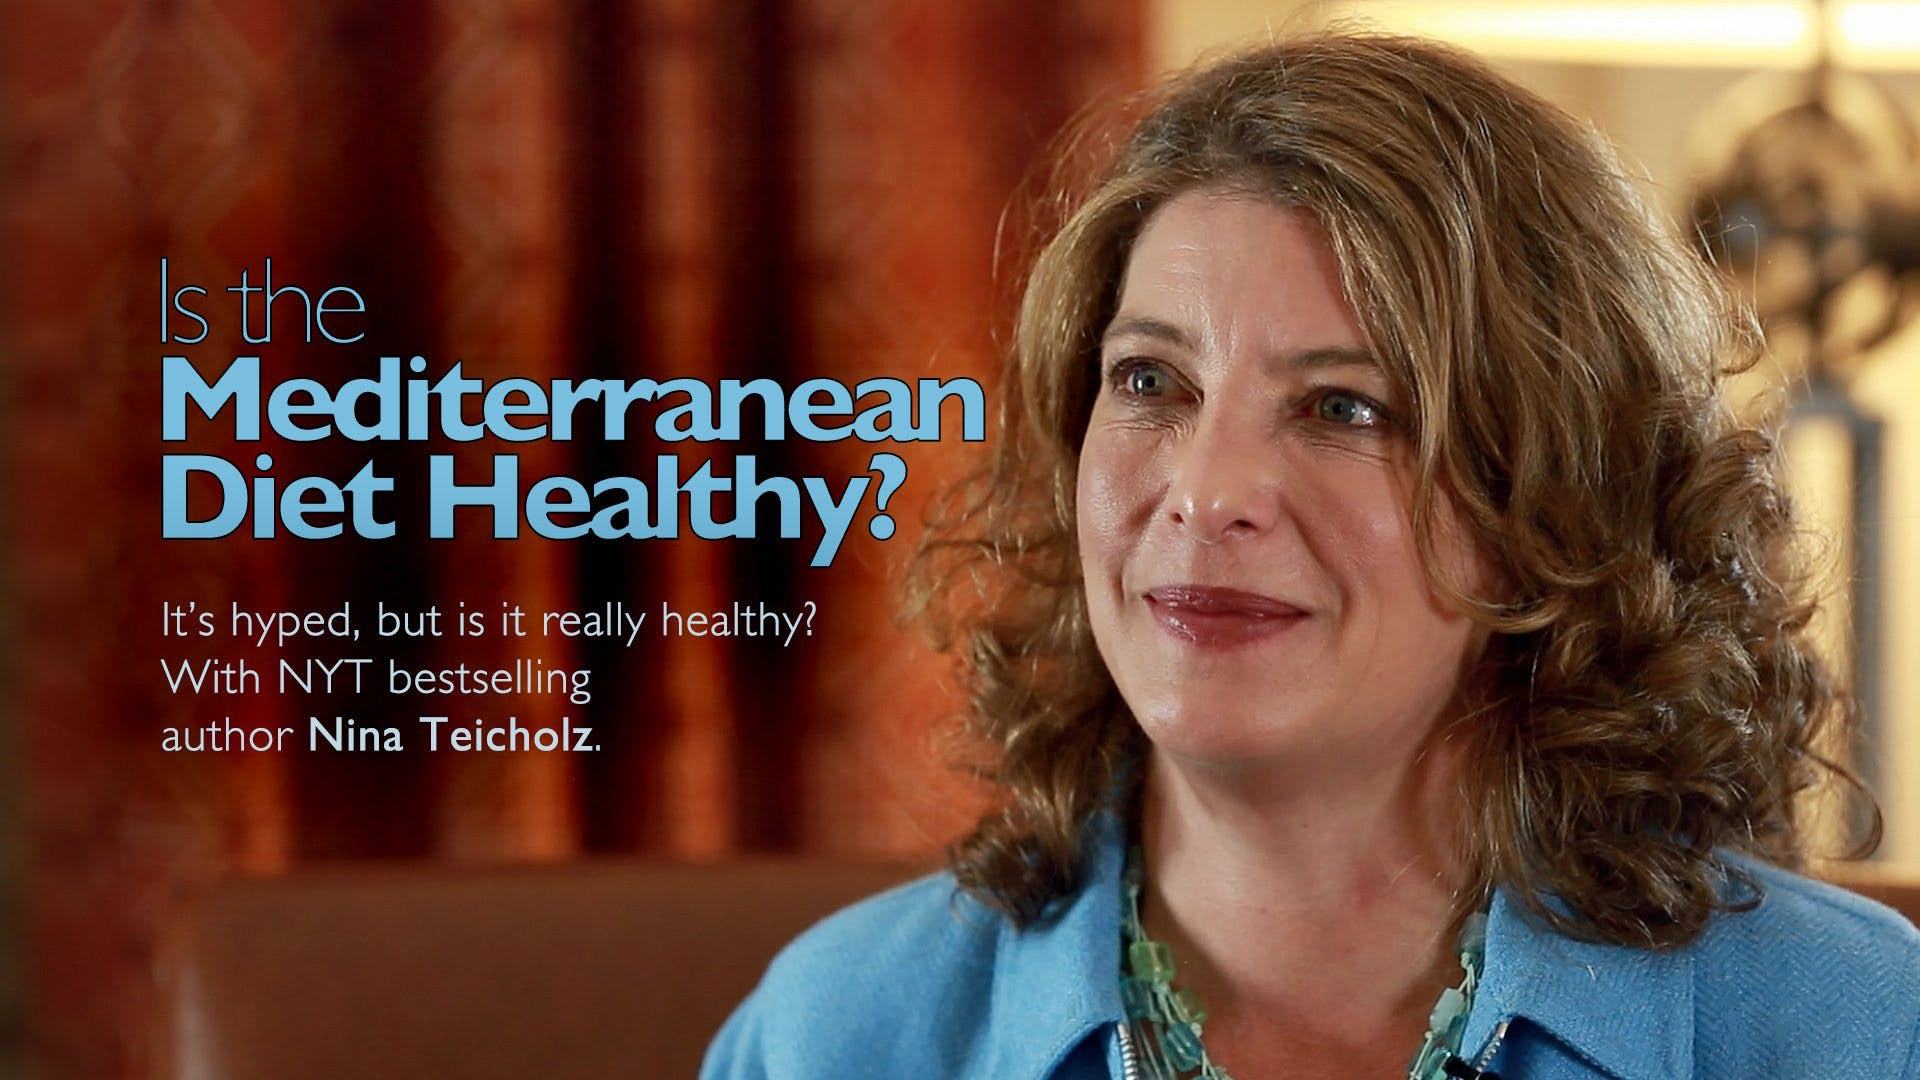 Is the Mediterranean Diet Healthy? – Nina Teicholz